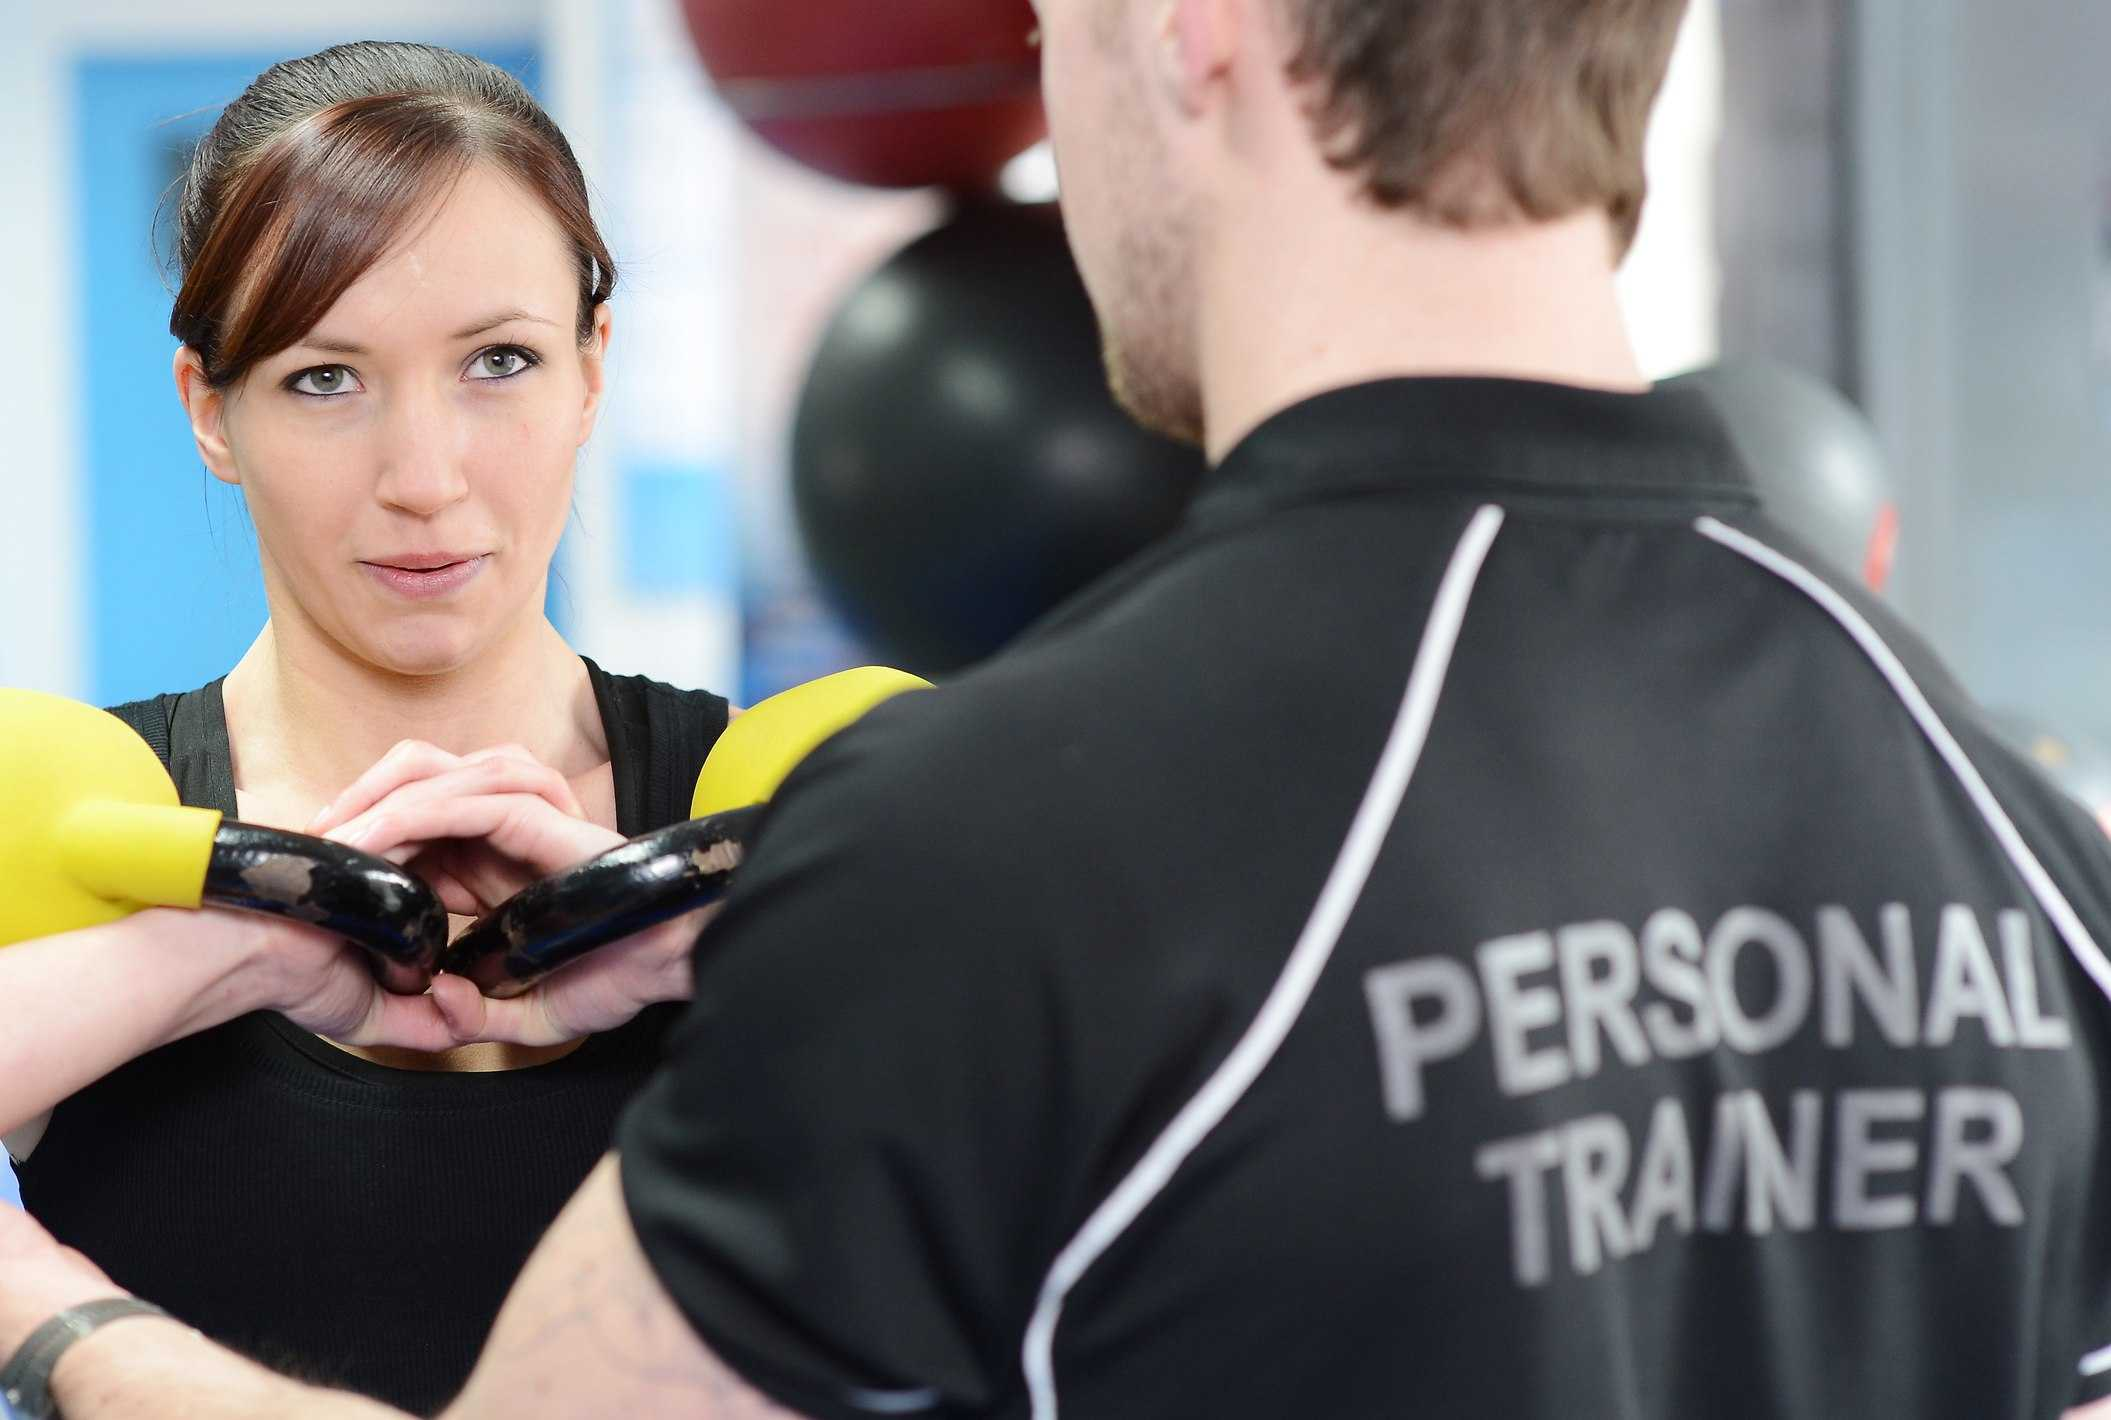 personal trainer course london